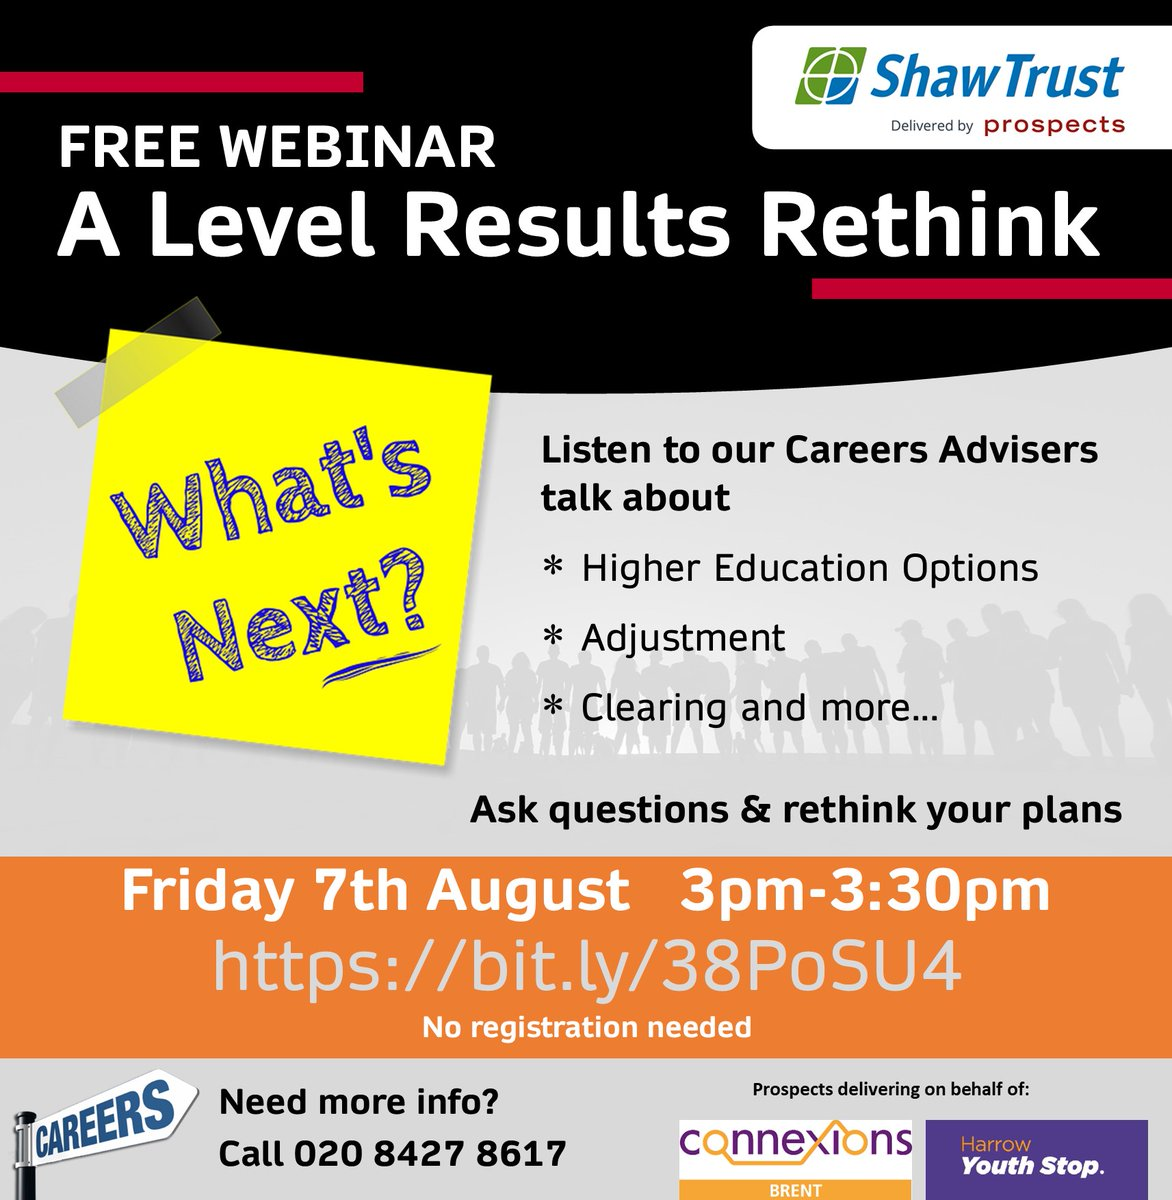 Don't miss the A Level results rethink webinar - TODAY at 3pm Set a reminder and join us via https://bit.ly/38PoSU4  #CareersAdvice for teenagers #London borough of #Harrow 020 8427 8617  #JobSearch #University #Degree #GapYear #Apprenticeship #HarrowWebinars #UCAS #Clearingpic.twitter.com/XFhpofNUl7